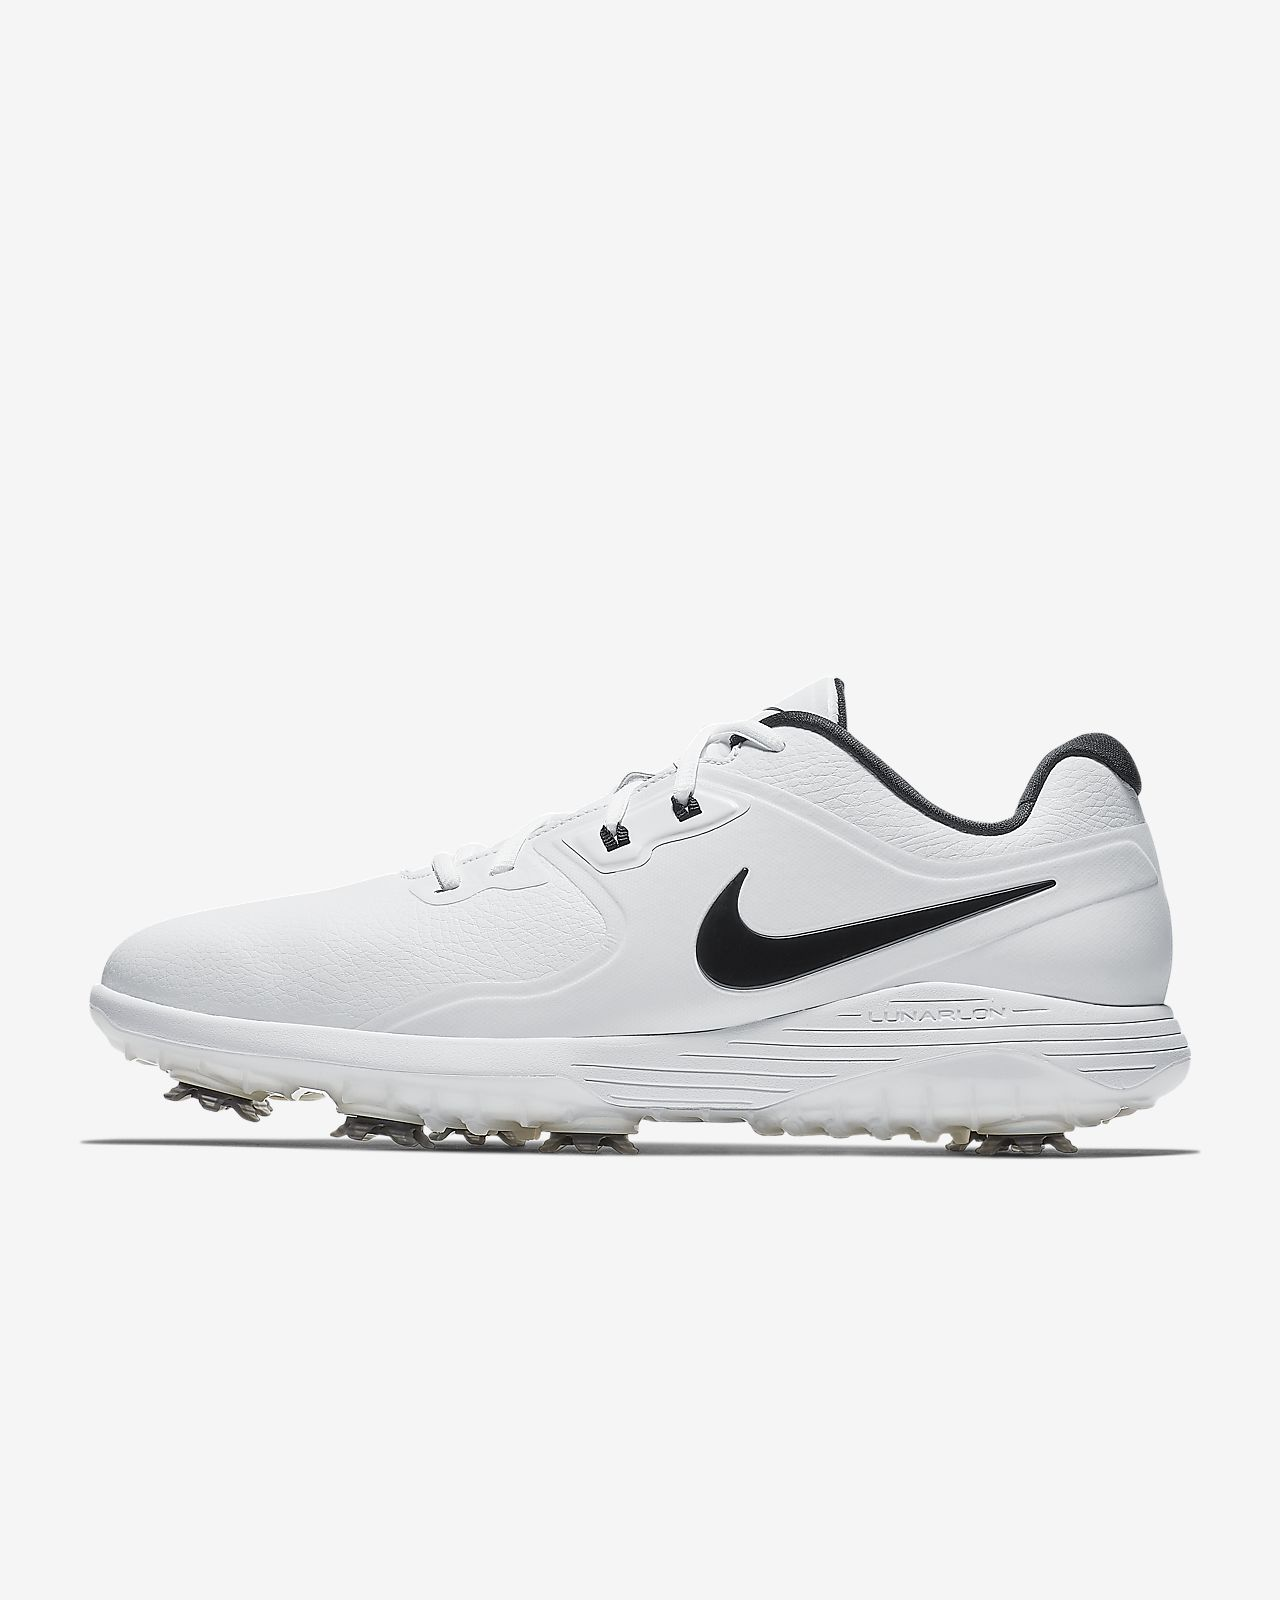 727ad0cb330 Nike Vapor Pro Men s Golf Shoe. Nike.com